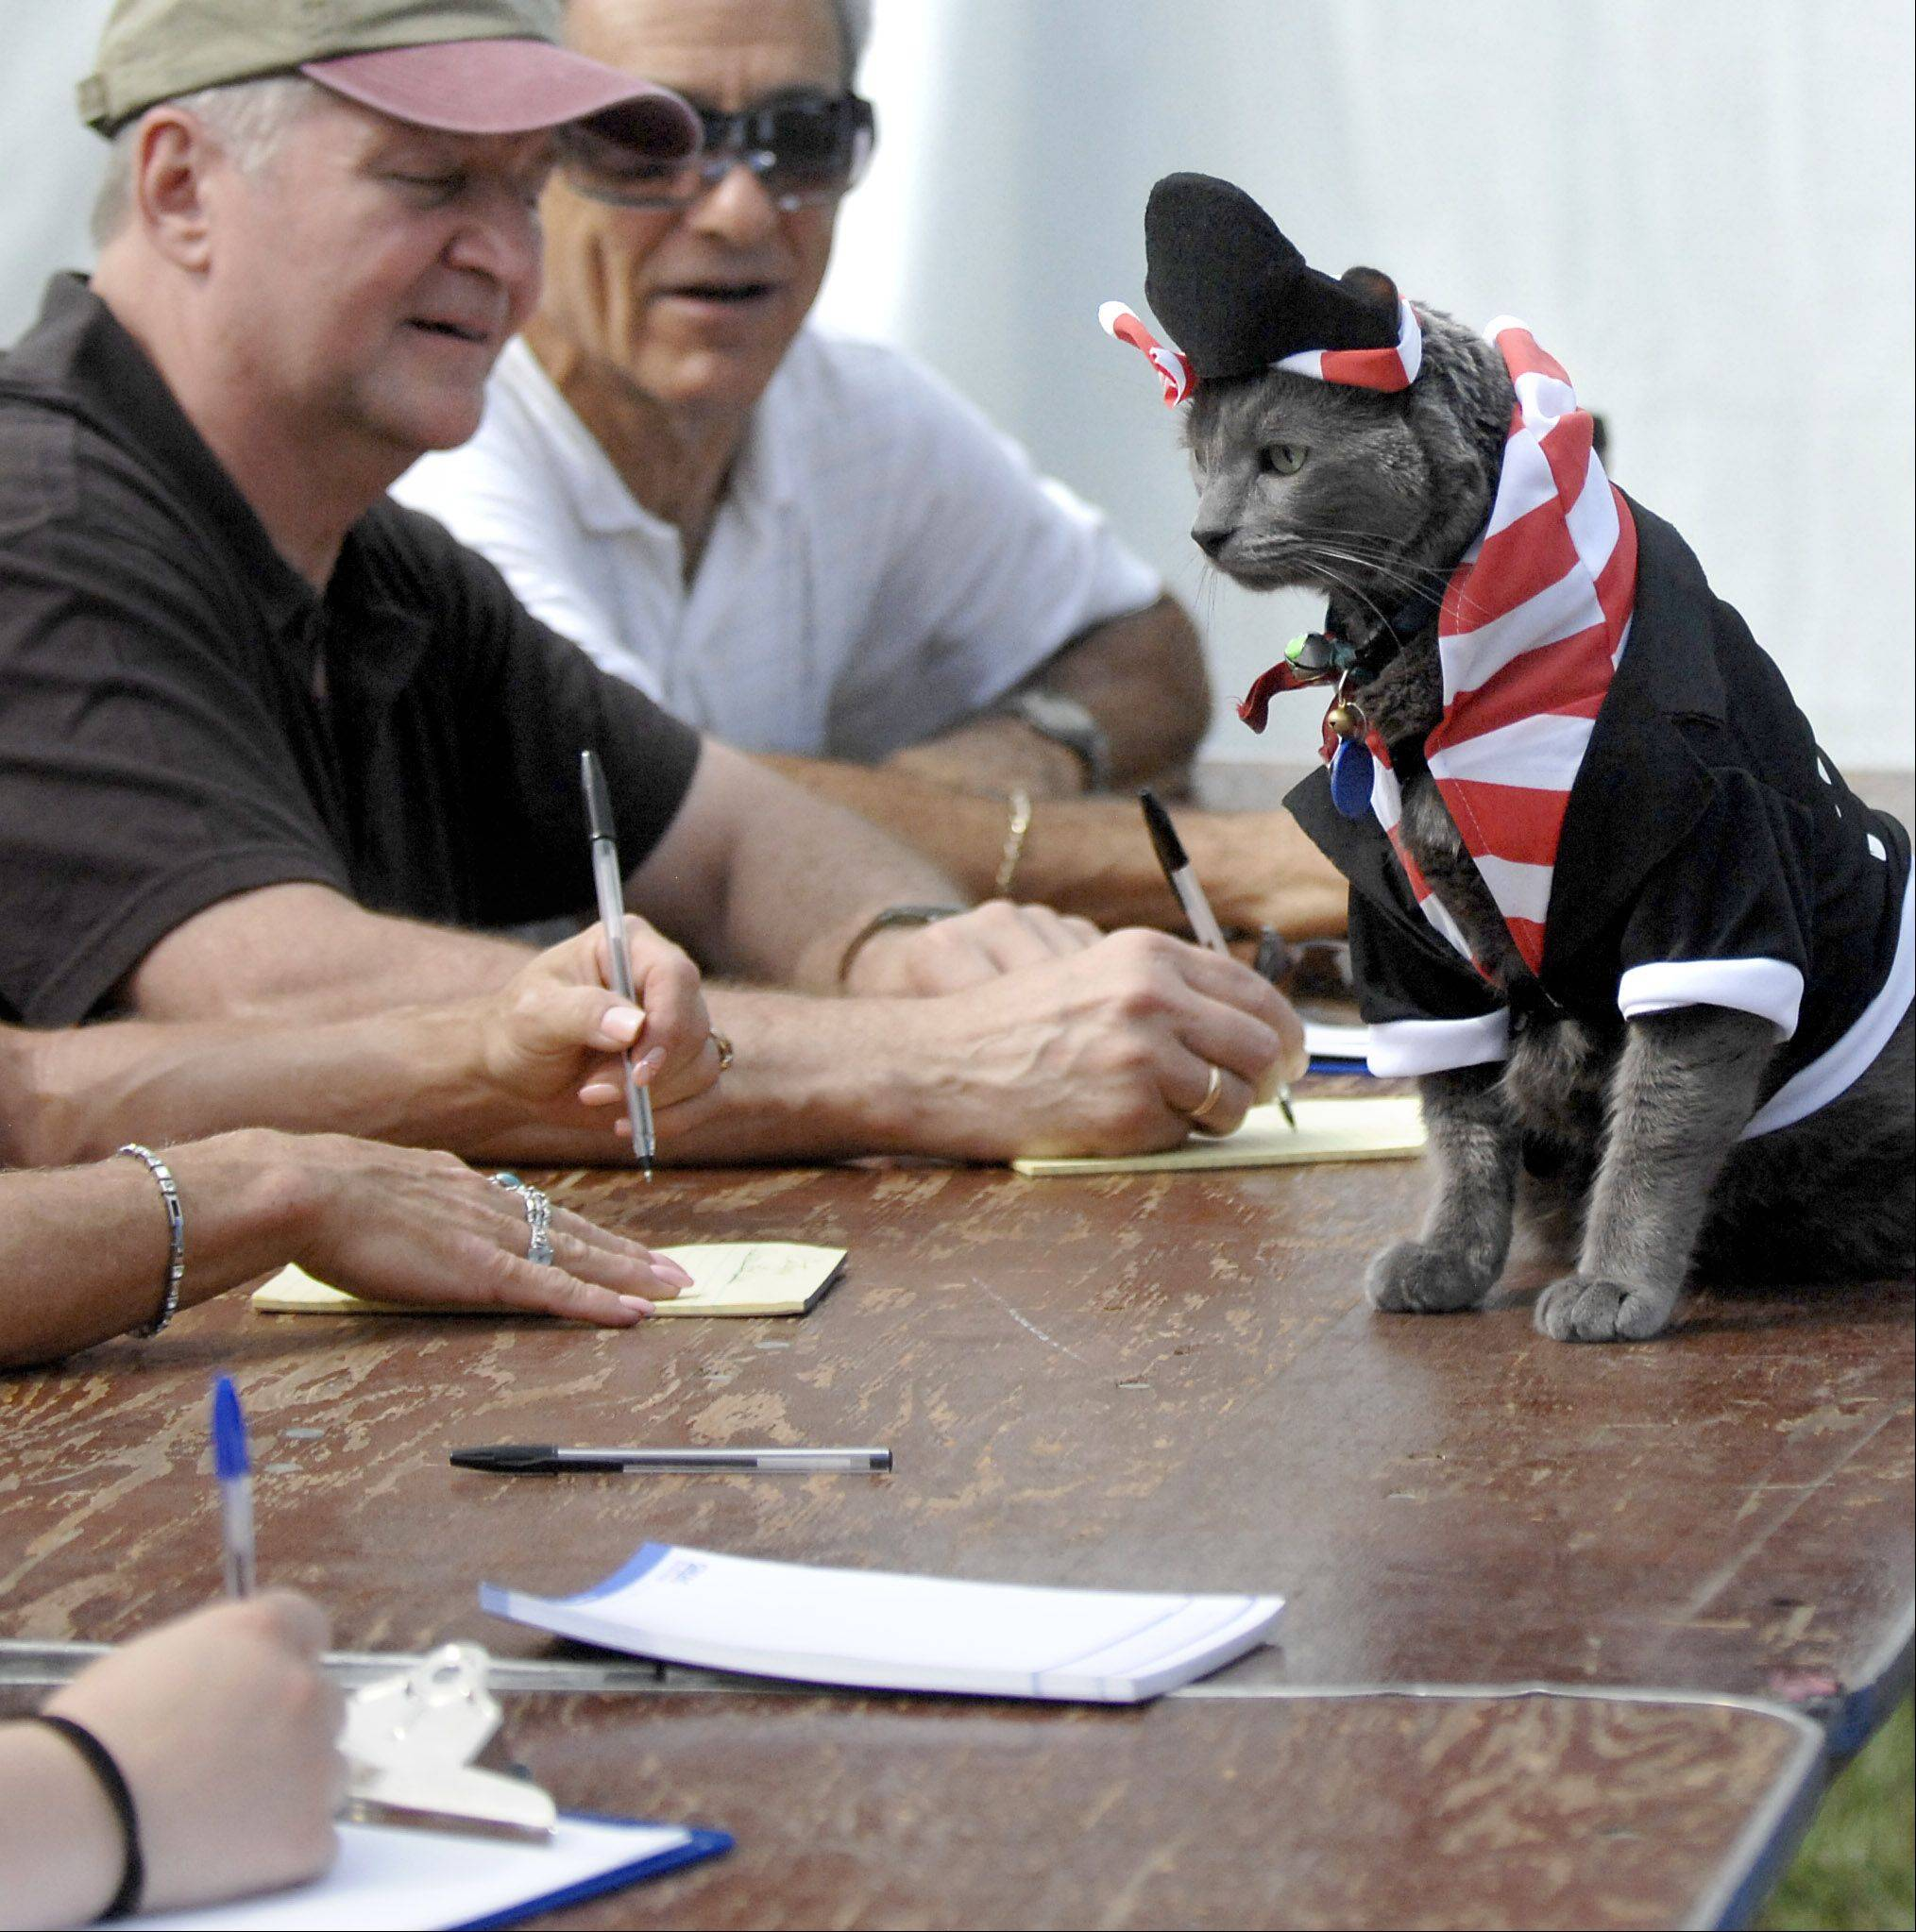 Bert, 12, is sized up by the judges in his pirate costume at the dog and cat show at the Algonquin Founders' Day festival in Towne Park. Bert is owned by Gabrielle Sarto, 10, and her brother, Riley, 8, of Algonquin.